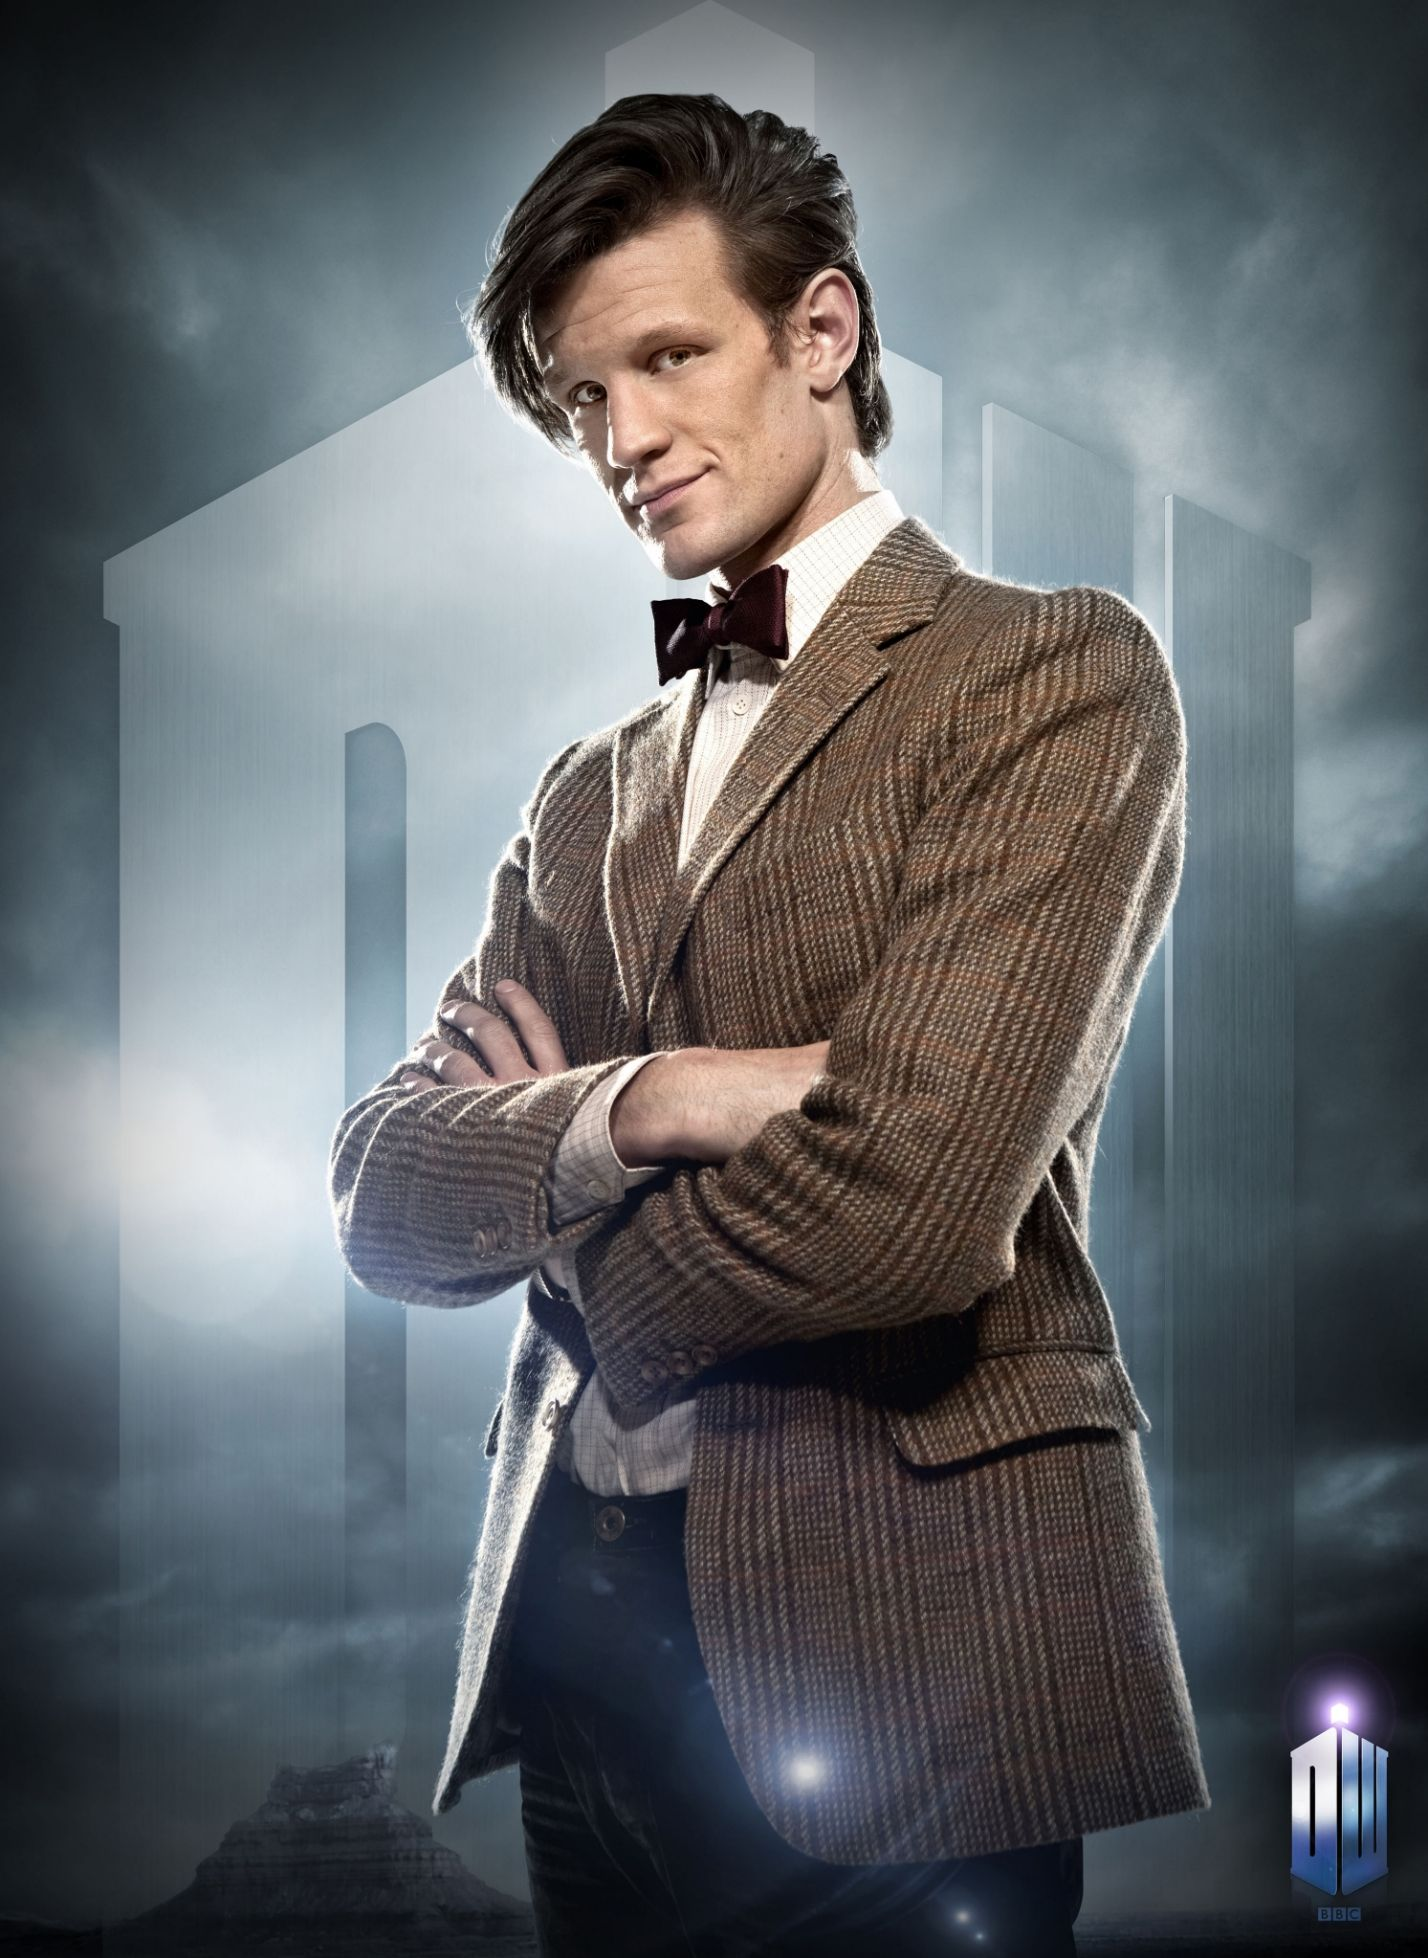 """Thank you very much to my Nephew Ryan for so brilliantly capturing the true essence of both THE DOCTOR and myself by phenomenally hand drawing this photo of THE """"11th"""" DOCTOR(Played by Matt Smith.)and the above quote on a customized card as a perfect gift for my 53rd birthday!!!!!!!"""